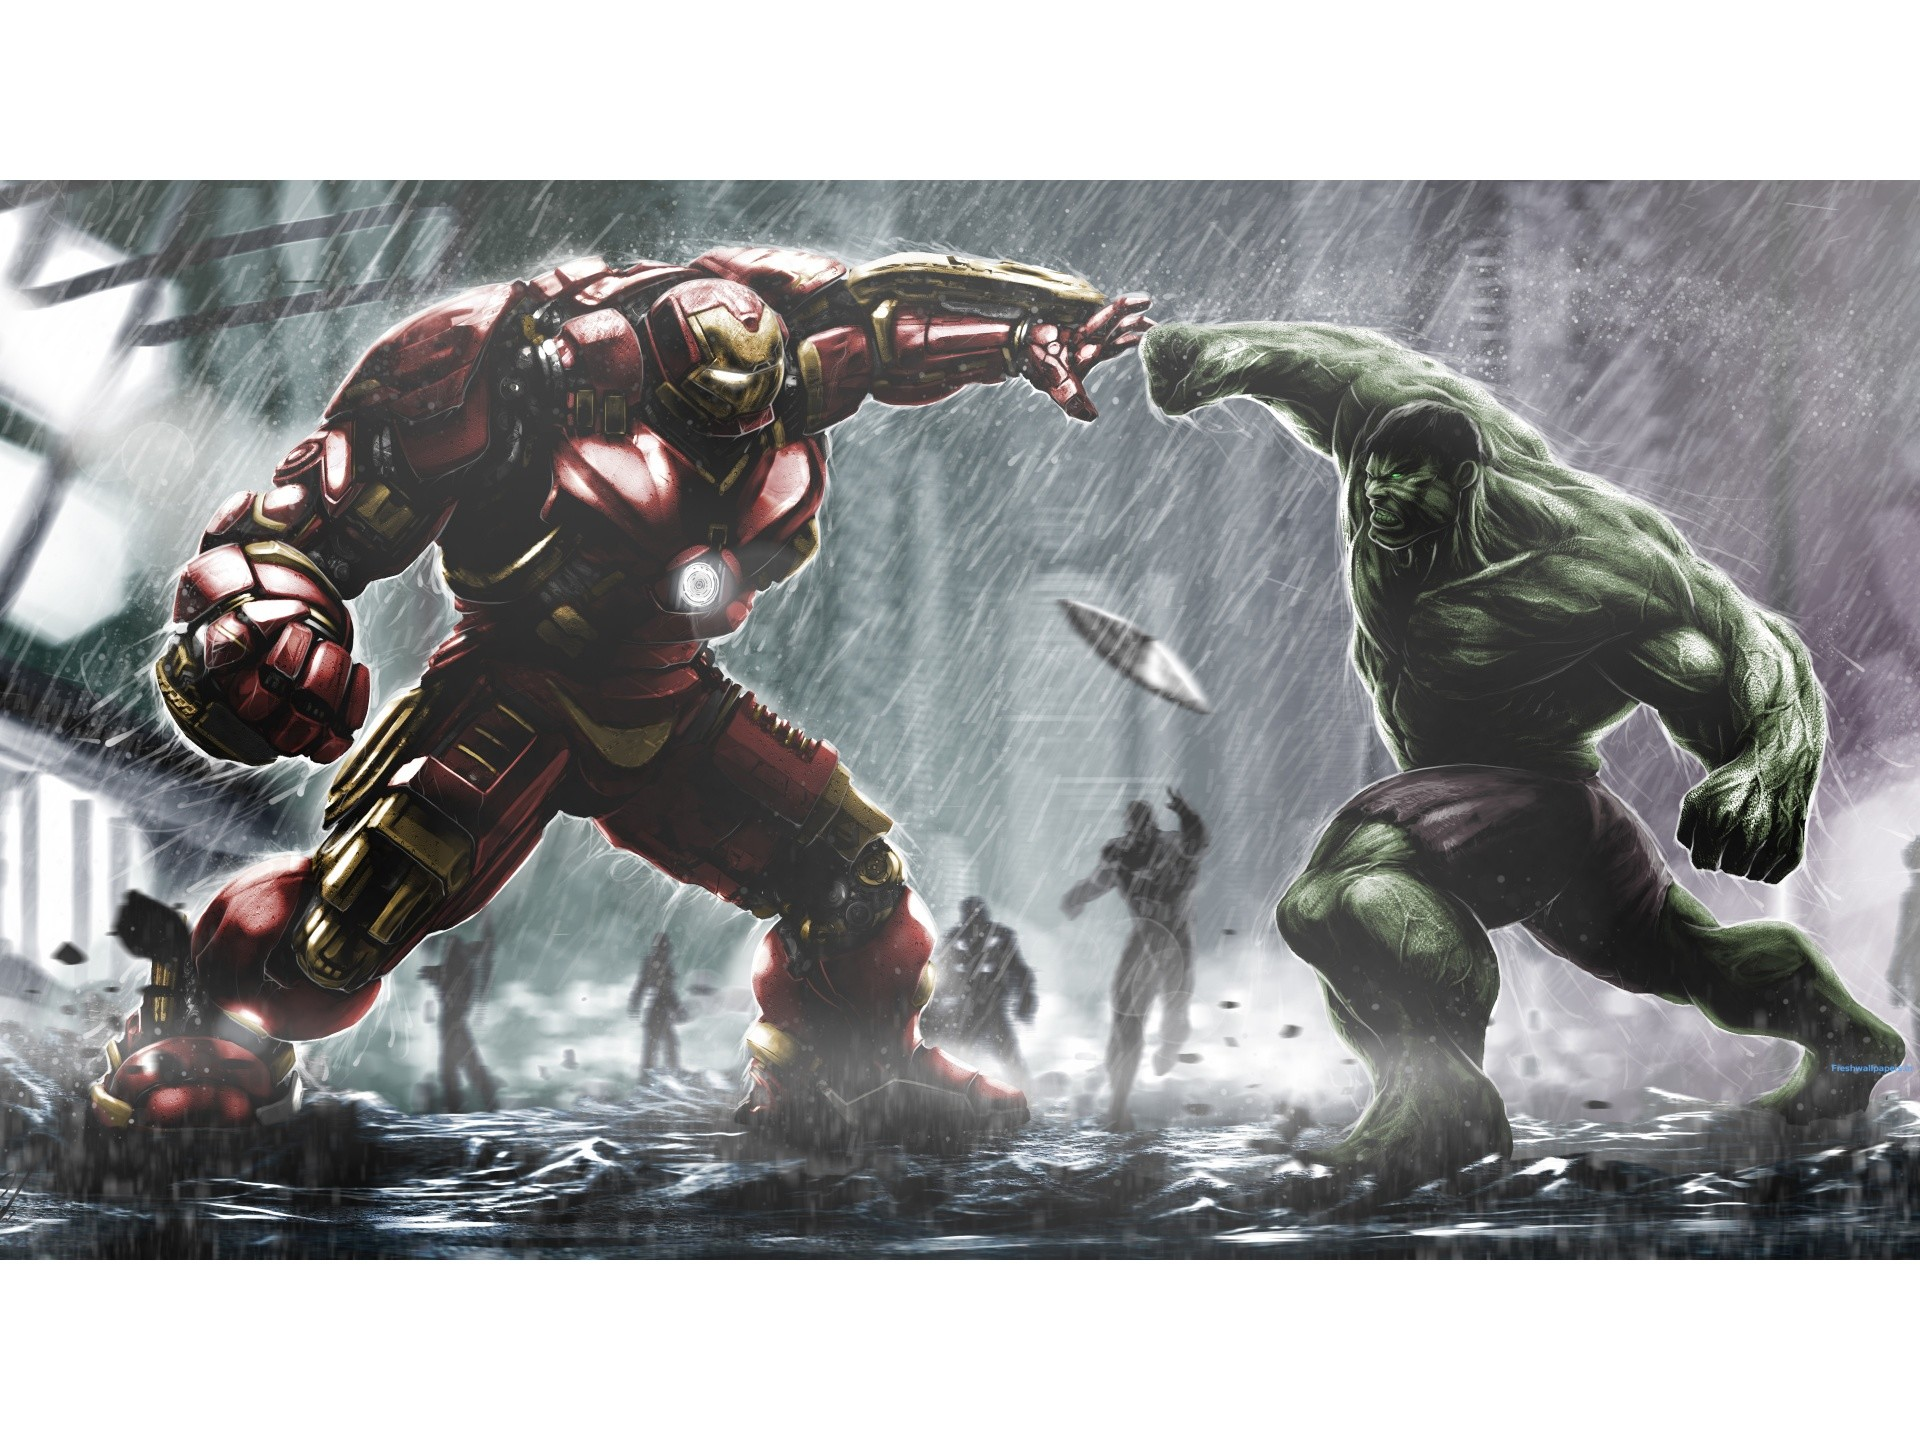 1920x1440 ... Best 100% Quality HD Wallpaper's Collection: Hulk Wallpapers (50 .